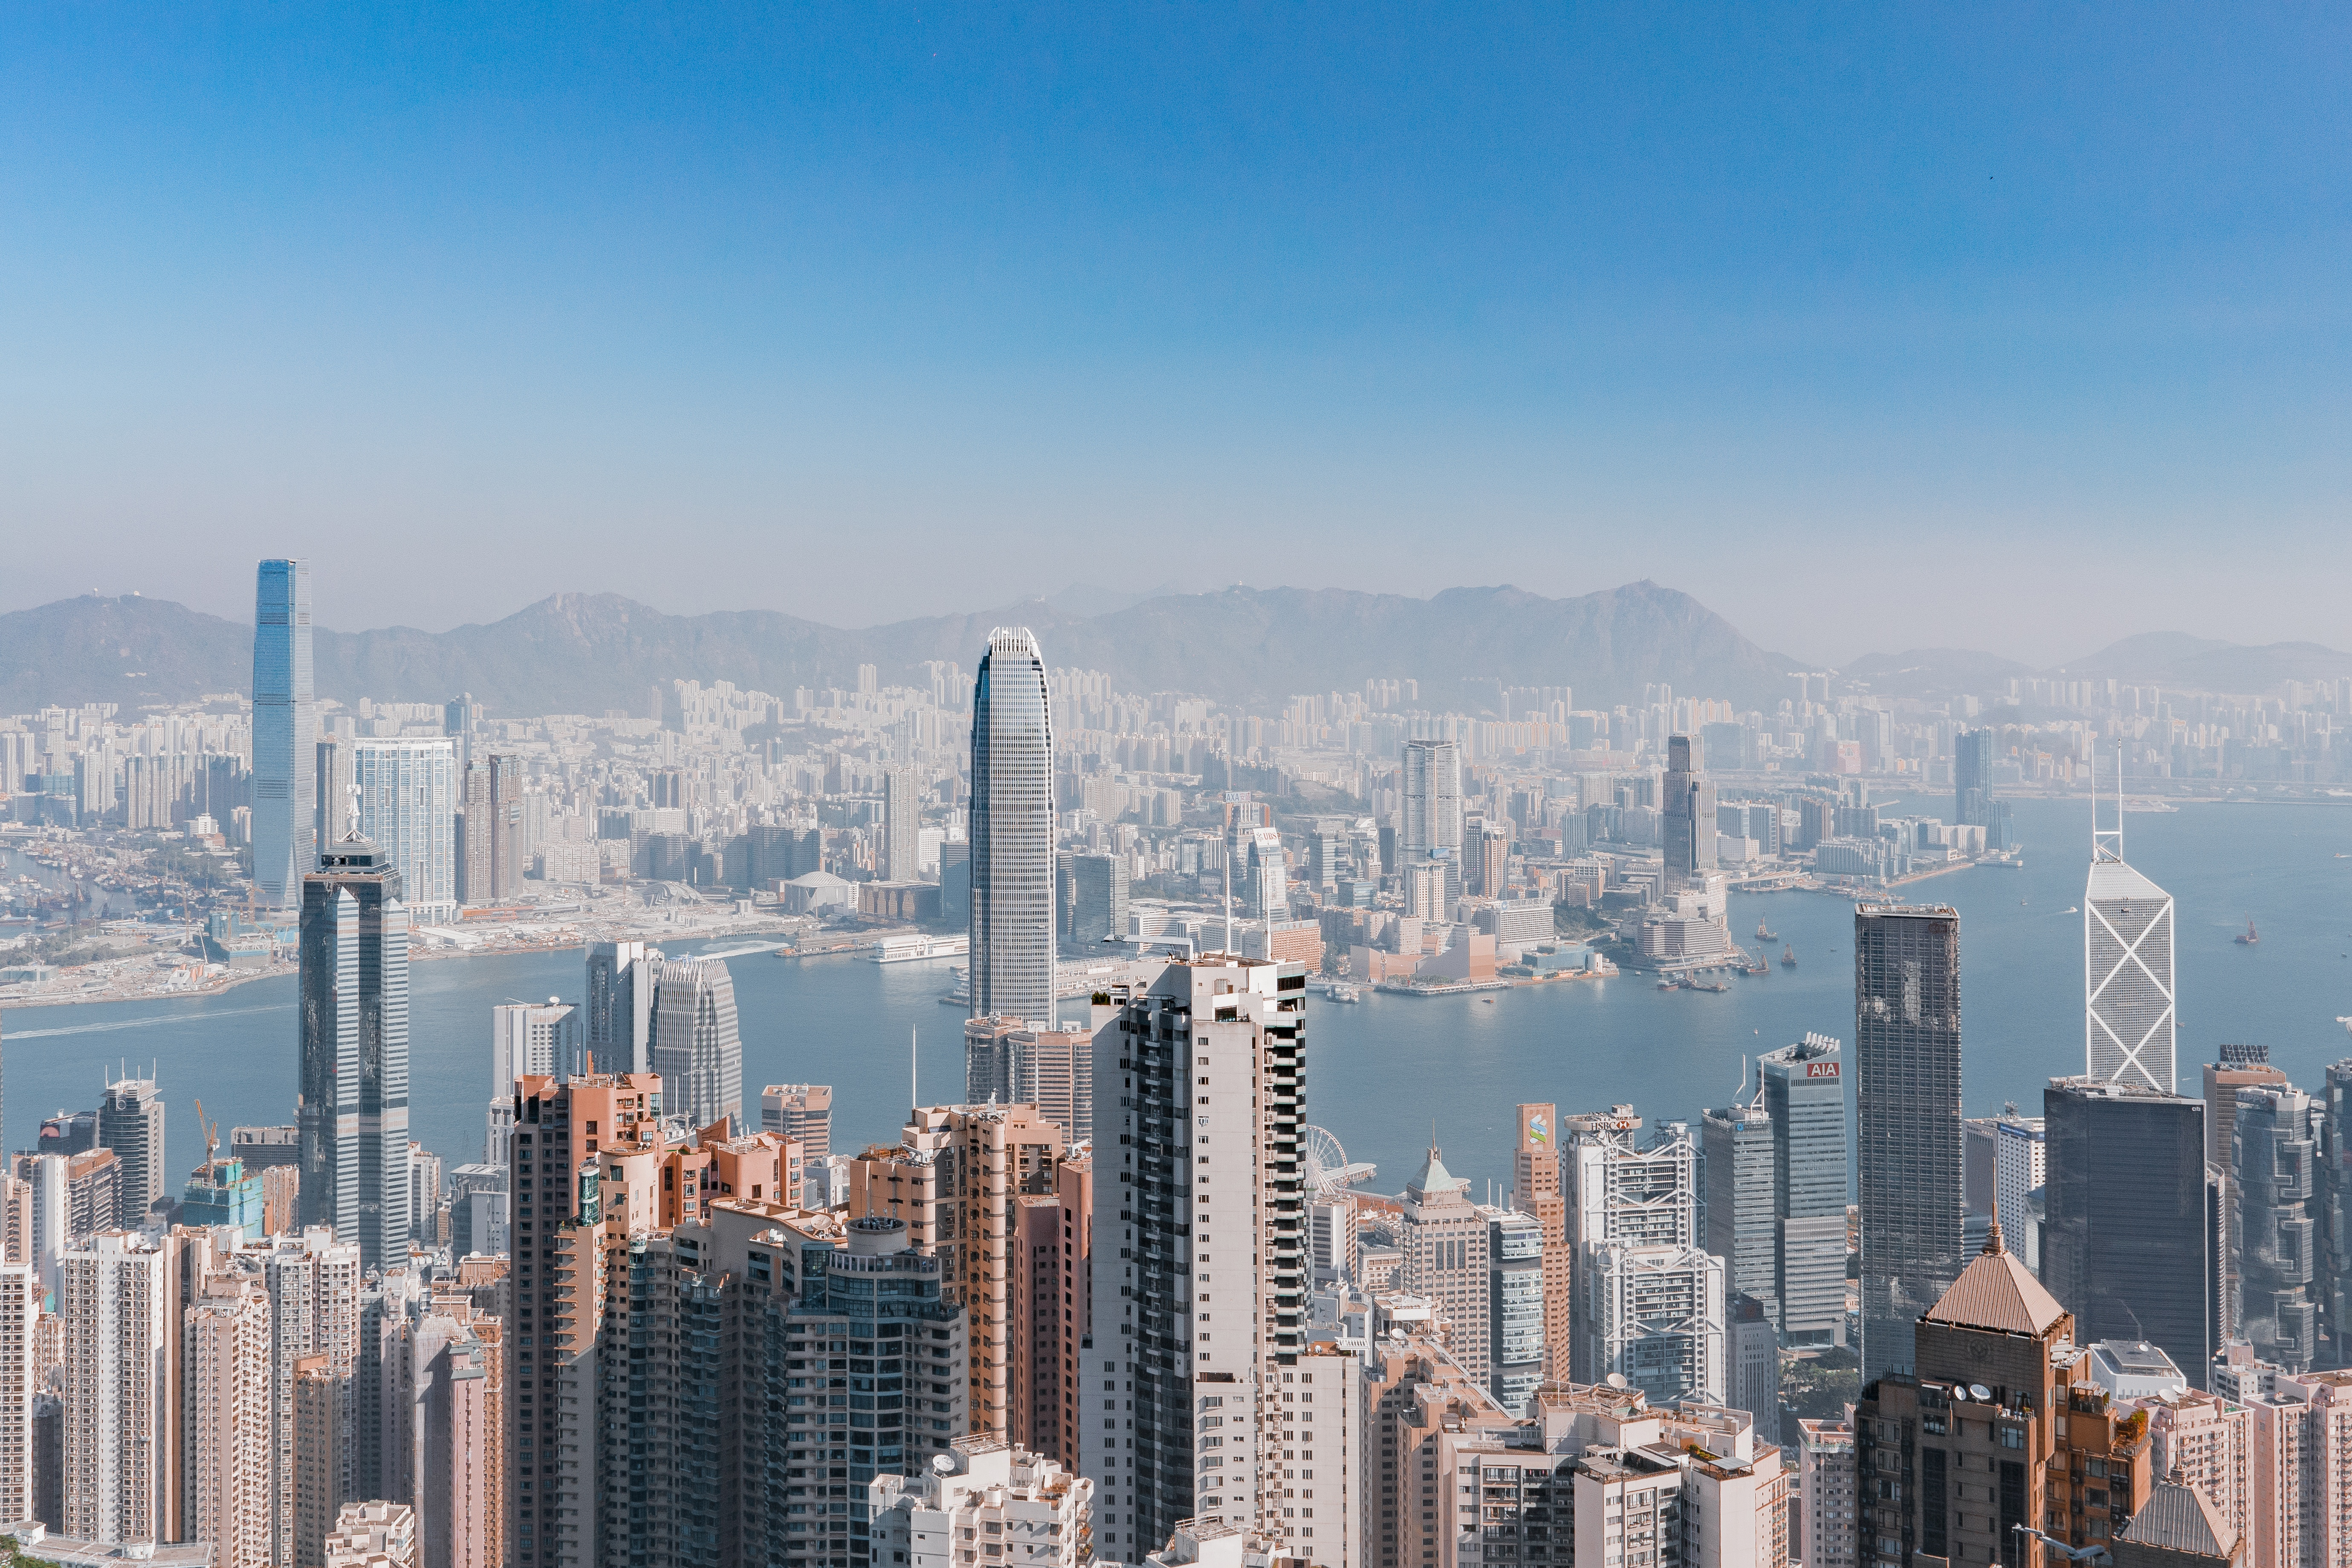 Vontobel to enlarge Asian footprint with new offering for growth market of external asset managers